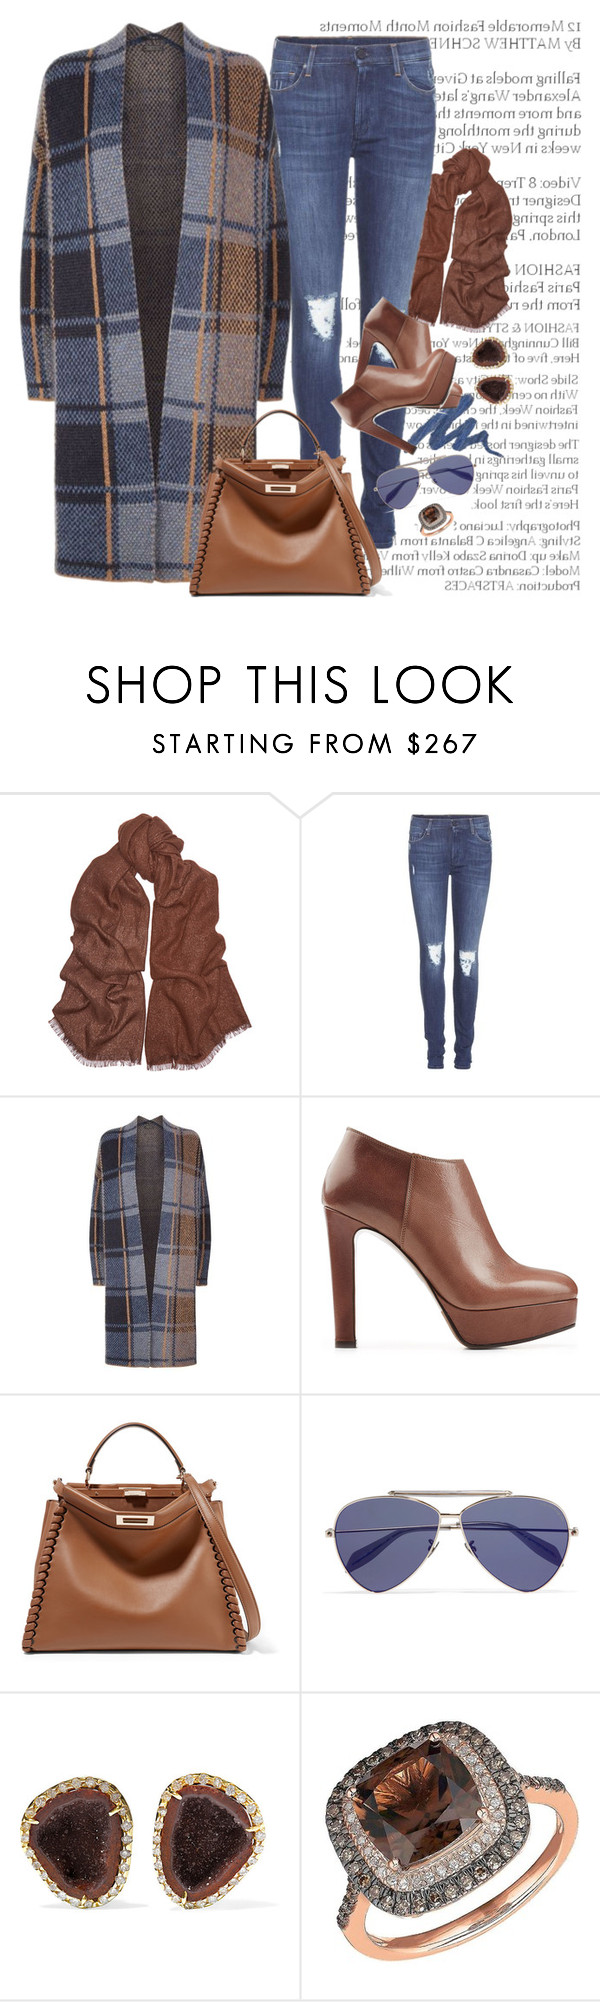 """E728"" by saltless ❤ liked on Polyvore featuring Urban Decay, Brunello Cucinelli, 7 For All Mankind, SET, L'Autre Chose, Fendi, Alexander McQueen, Kimberly McDonald and Lord & Taylor"